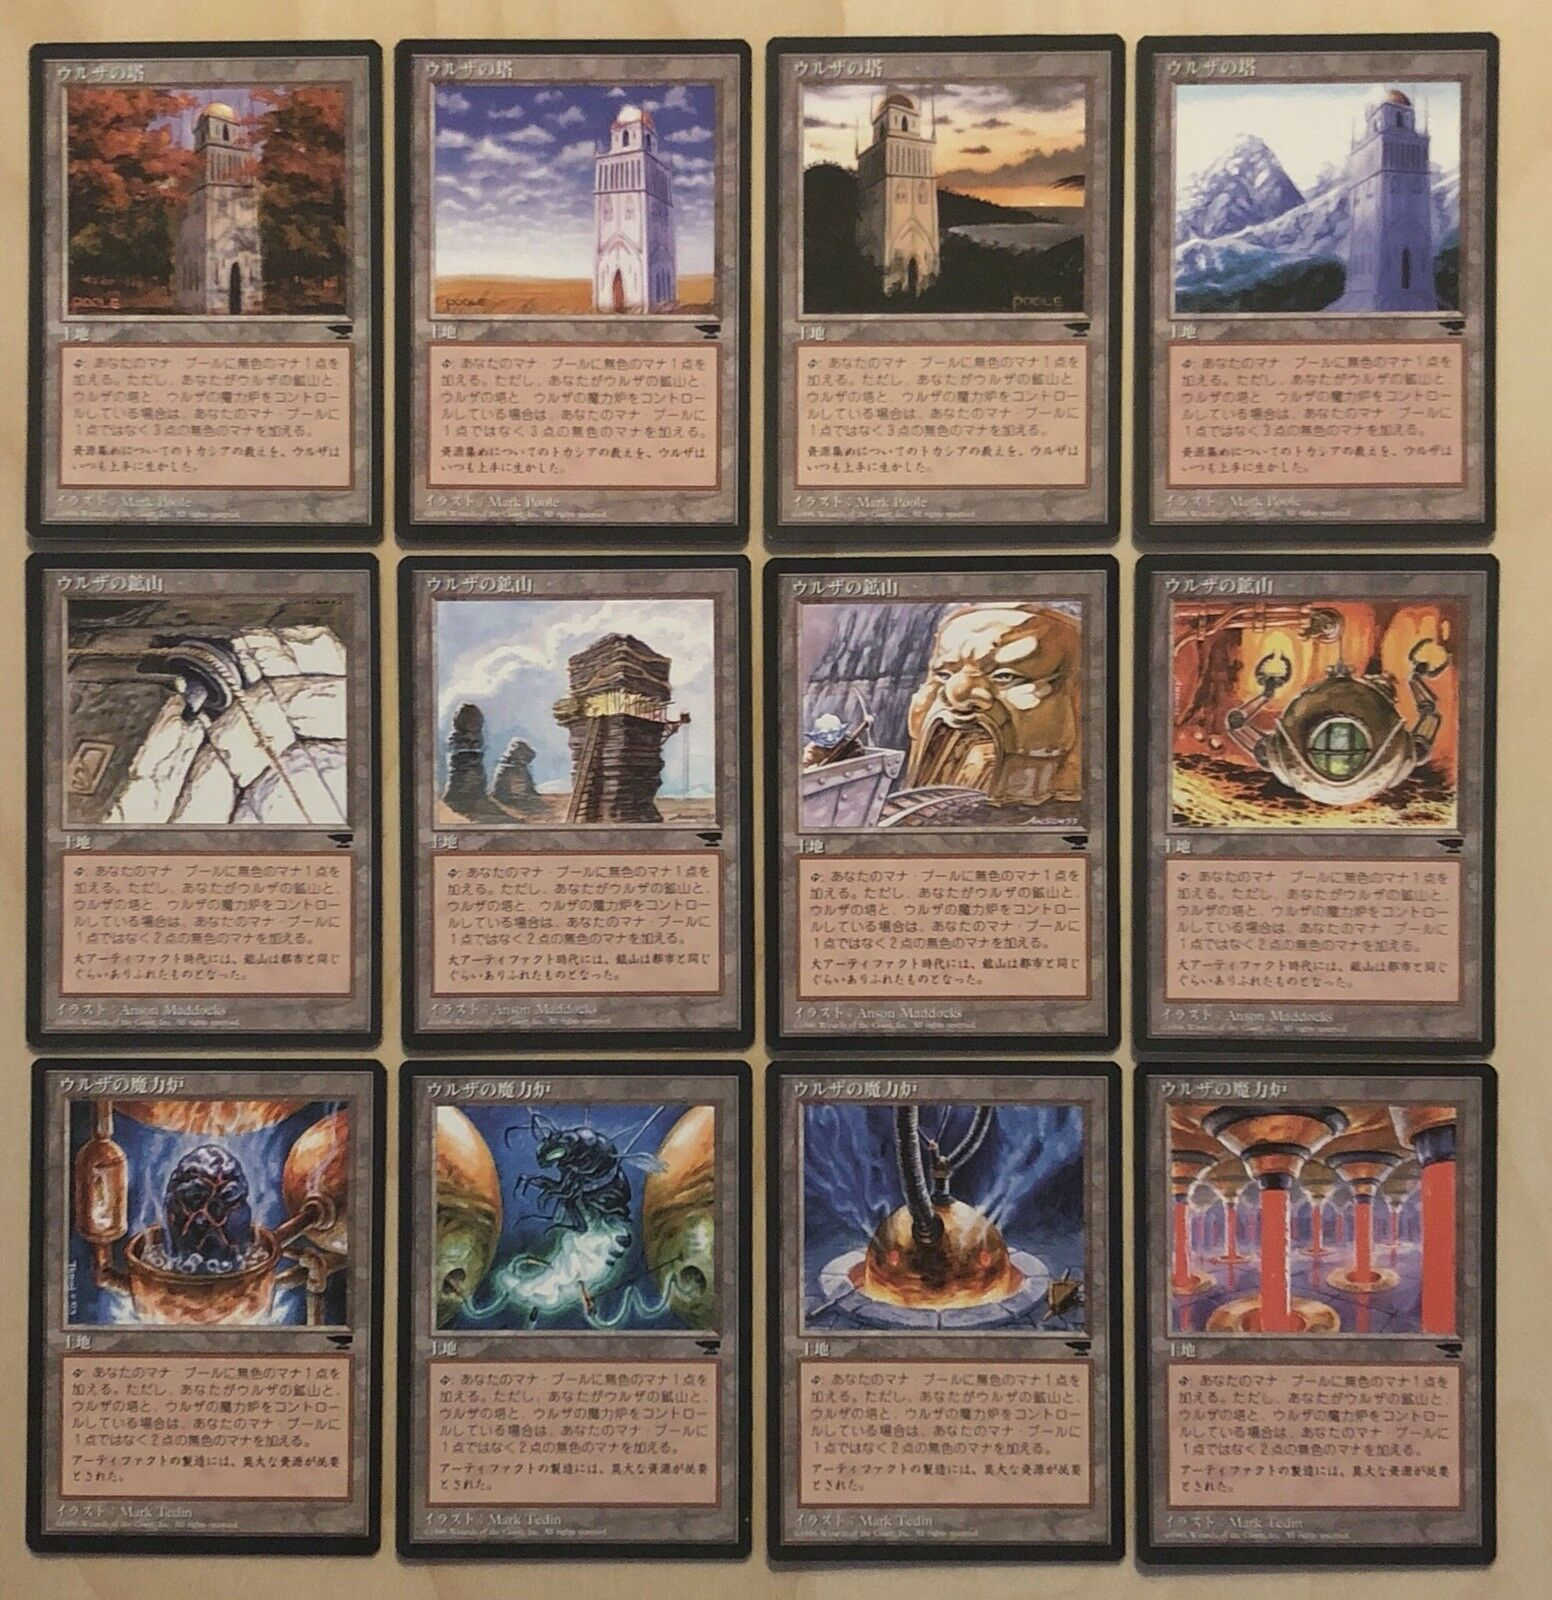 Urza's Tower Mine Power Plant Japanese FBB Chronicles mtg All Pictures 12 Set NM